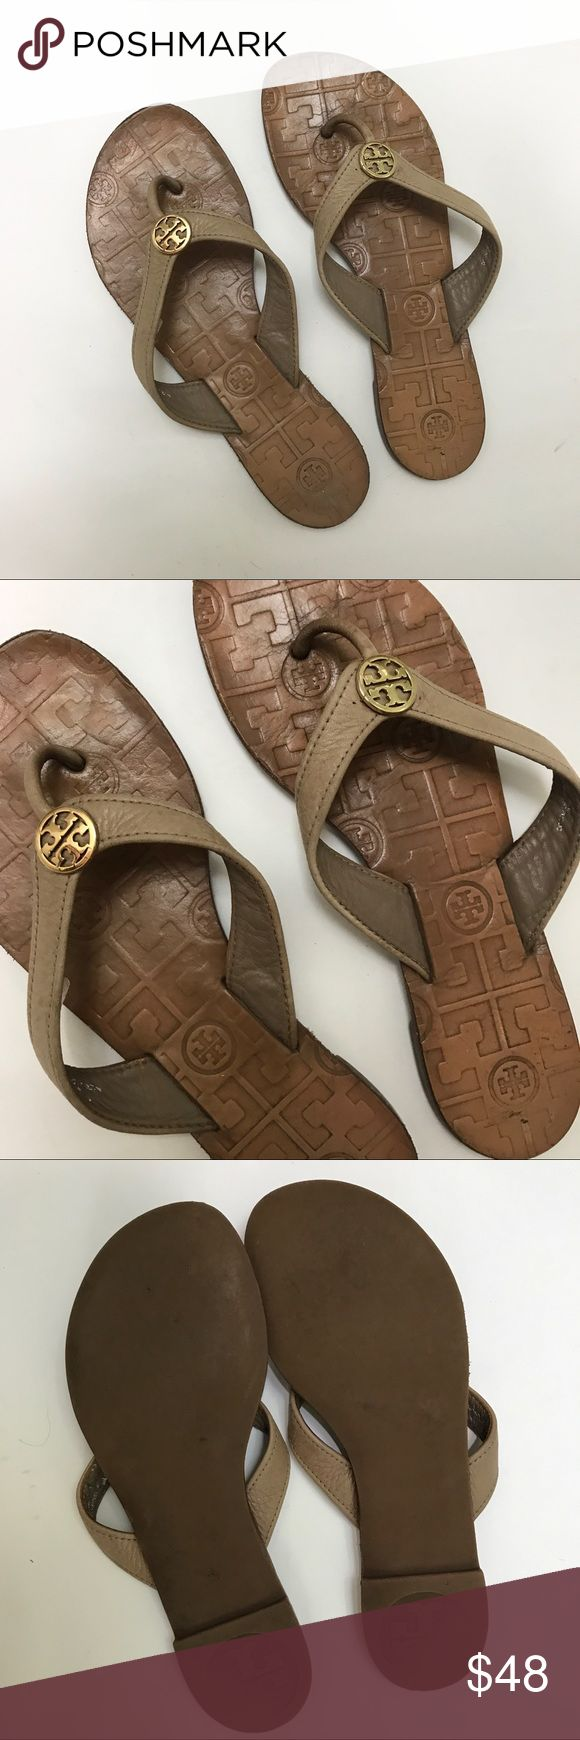 "Tory Burch Thora Leather Taupe Flip Flops Sandals Tory Burch Thora Leather Taupe Cream  Flip Flops Sandals. Gold Medallion. Size mark sticker on inside strap worn off. Measures as 5.5 but please measure against you own flip flop. Measures tip to tip 9-1/8"" length and 3-3/8"" width, 7.5"" to strap from the back. Worn condition. Leather and medallion are in very good condition. Sole and footbed have wear. Please let me know if you have any questions. Tory Burch Shoes Sandals"